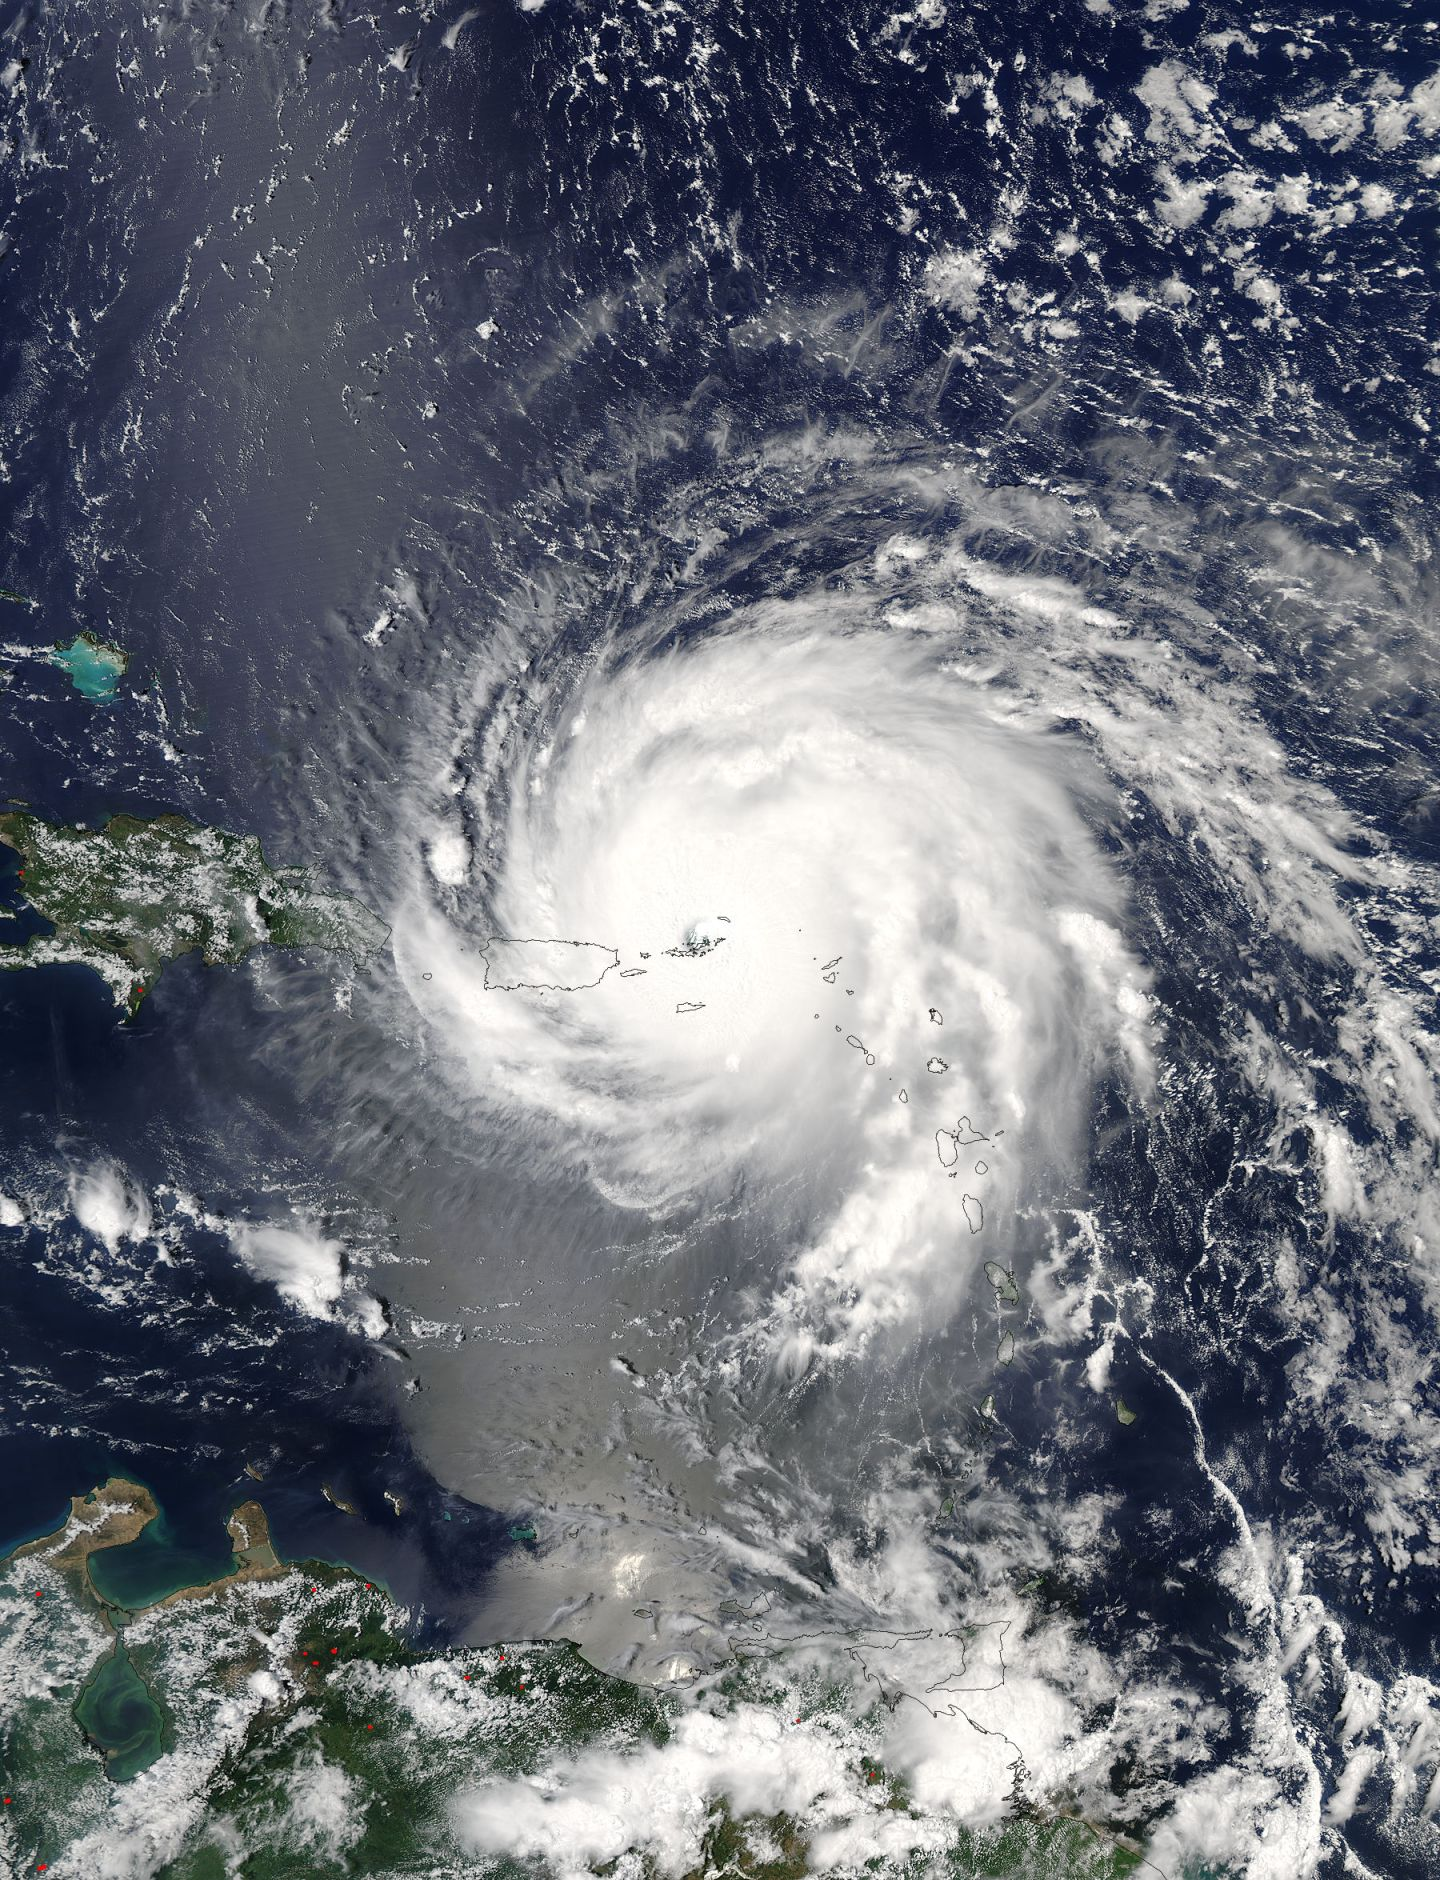 Looking Irma in the eye